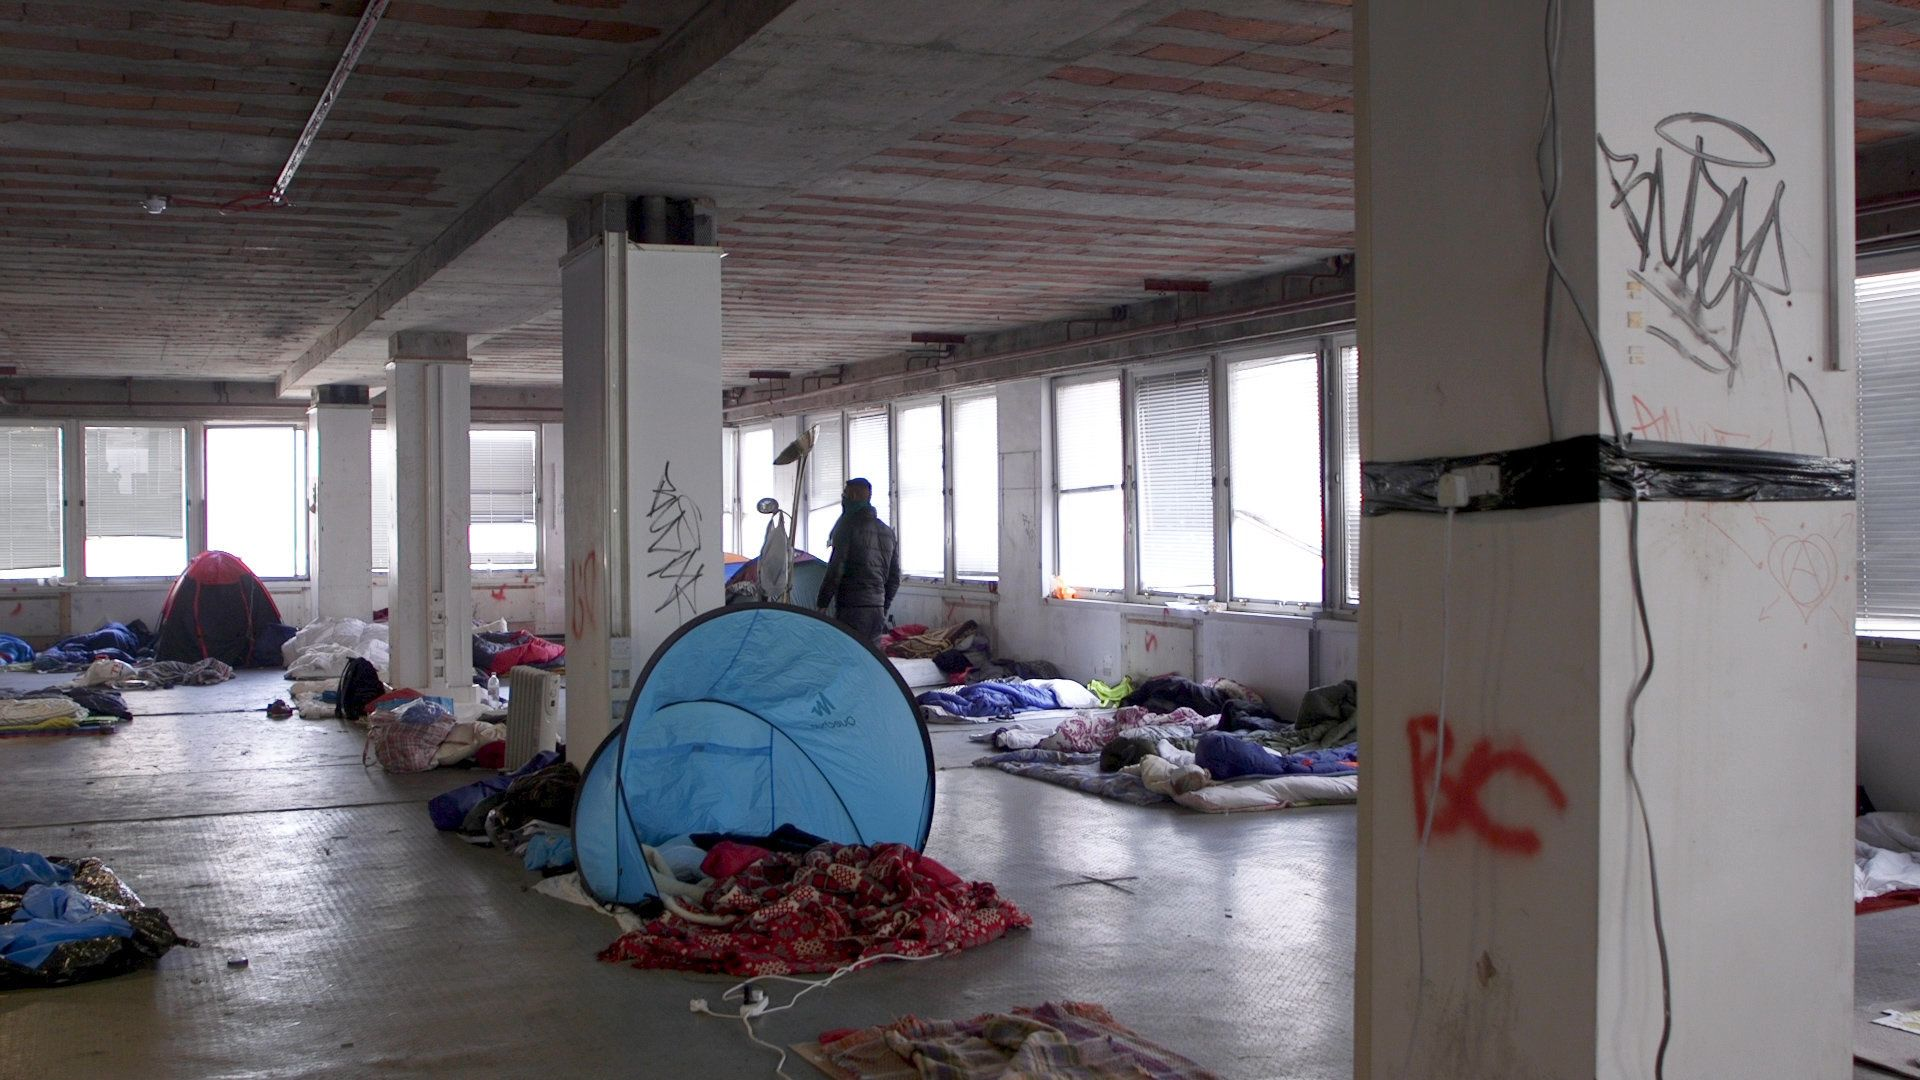 Tents and mattresses cover the floors of Sophia House